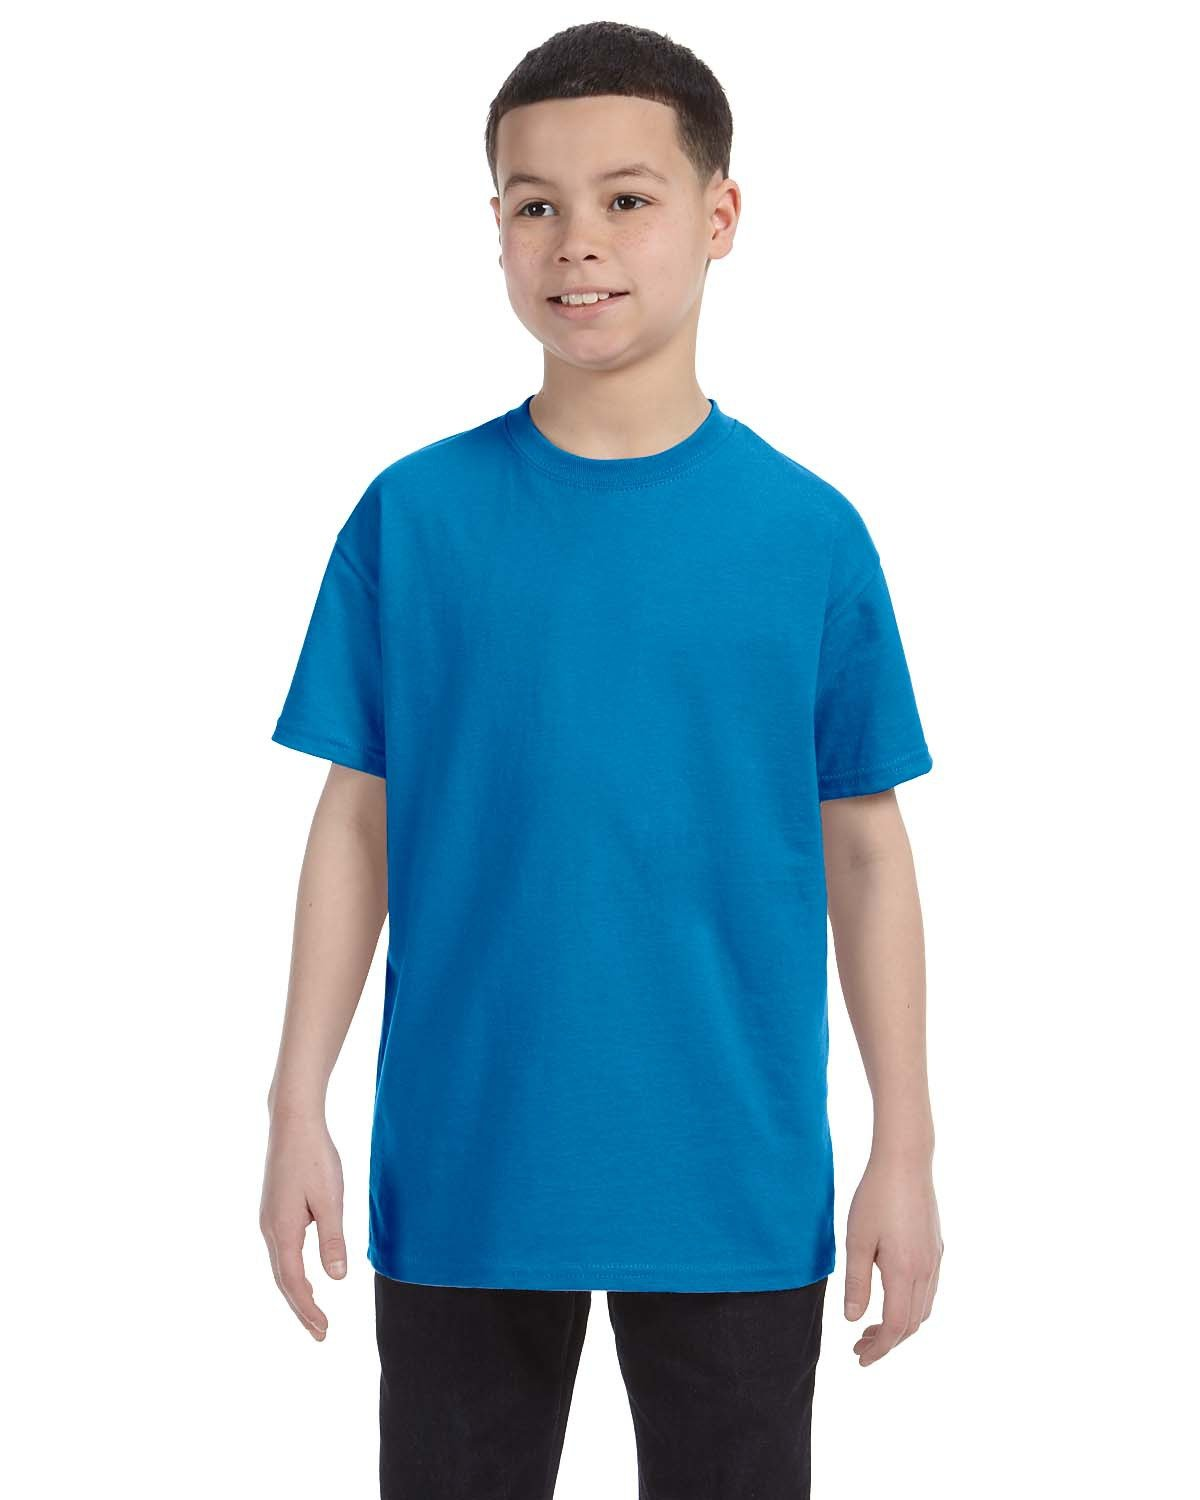 Hanes Youth Authentic-T T-Shirt SAPPHIRE